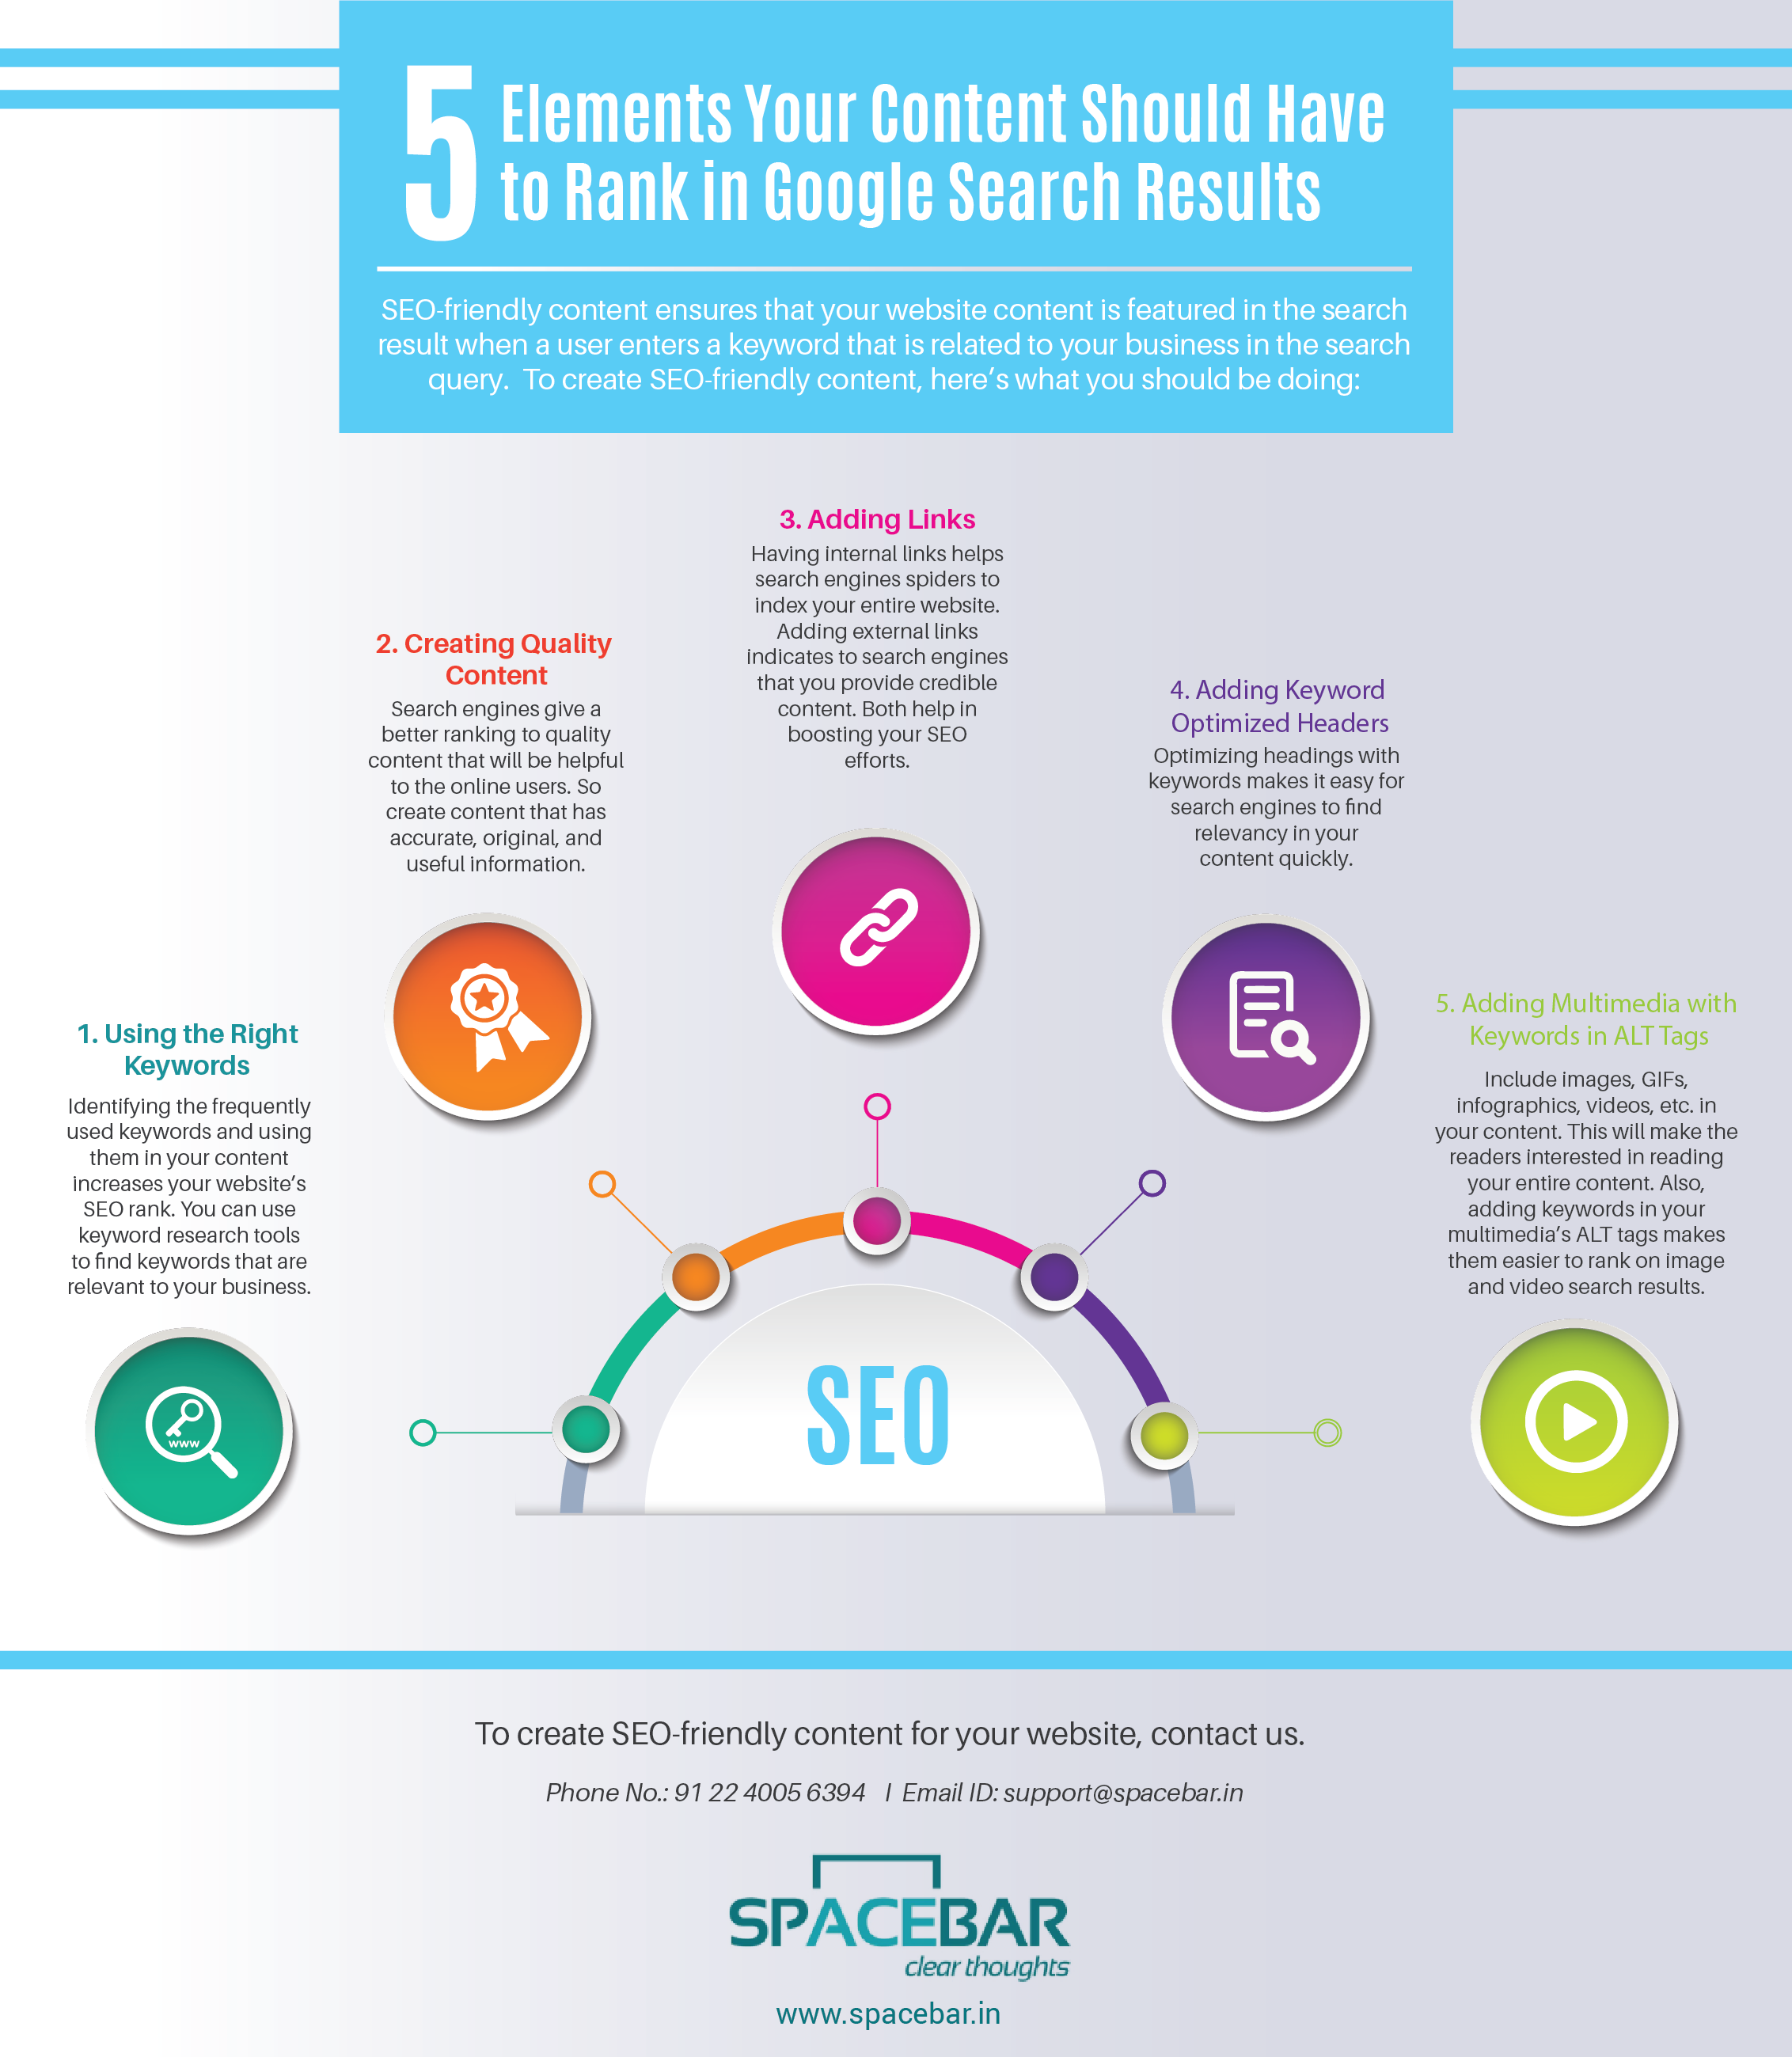 5 Elements your content should have to rank in Google Search Results